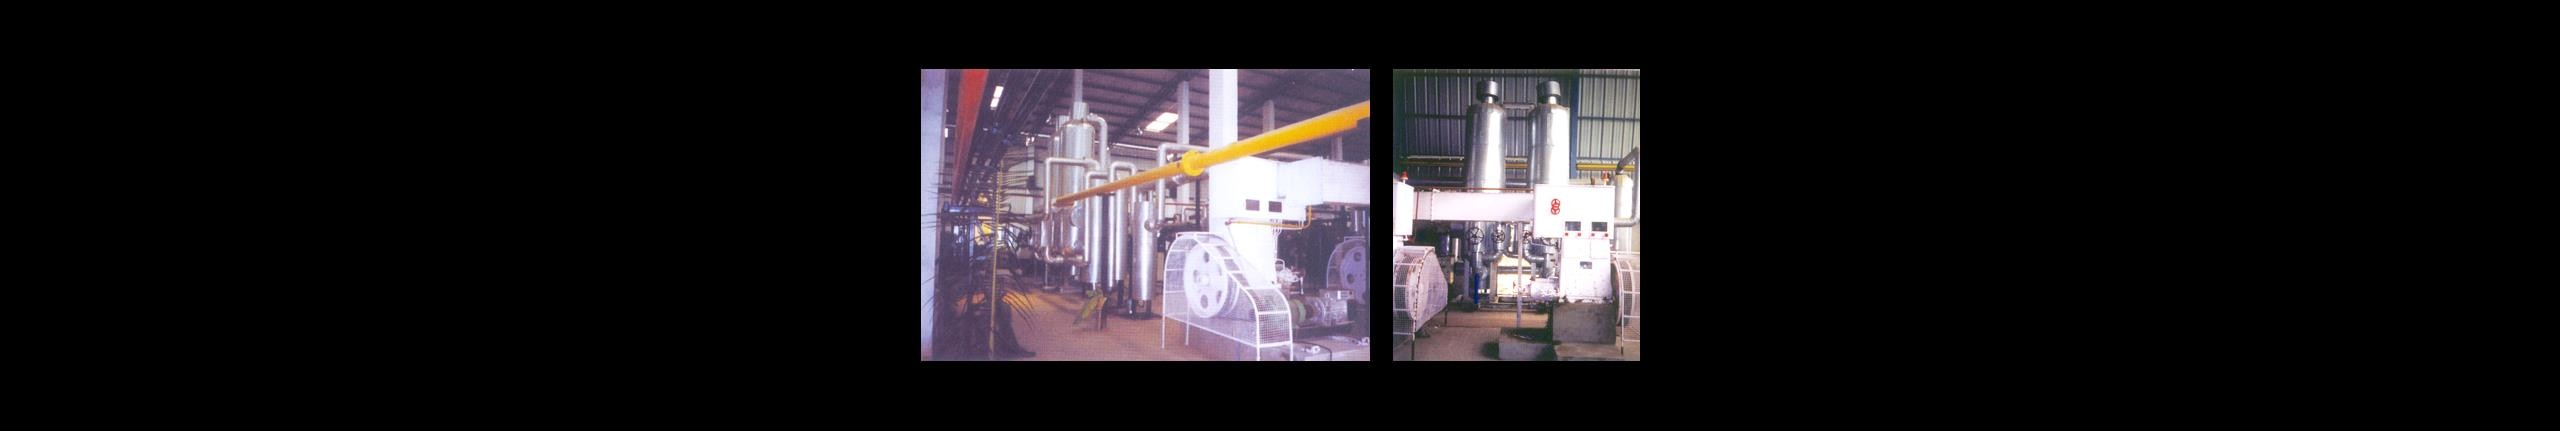 Nitrogen Gas Plant Manufacturer Sanghi Oversese is Leading Manufacturers of Oxygen, Nitrogen and Other Industrial Gas Plants. Nitrogen Plant, is safe and economical to operate. It comes with an efficient expansion engine, which lowers the operating pressures remarkably to as low as 32-35 kg/cm2 and also cuts down power consumption. A Molecular sieve Battery drier unit for separation of moisture and carbon dioxide is another money-saving device in the SANGHI-ORG plant. It removes acetylene and other hydro-carbons from the process air, thus eliminating the need for separate acetylene absorbers, and moreover it eliminates recurring caustic soda costs. The SANGHI-ORG Nitrogen Plant is capable of simultaneously producing high purity nitrogen Gas. It also has internal compression Liquid nitrogen Pump to fill dry gaseous oxygen in cylinders. We also undertake supervision of Installation and Commissioning of the SANGHI-ORG Nitrogen Plant. About 100 CU.M./Hr of Nitrogen will be used for regeneration of driers for SANGHI-ORG 80. * About 150 CU.M./Hr of Nitrogen will be used for regeneration of driers for SANGHI-ORG 100. * About 300 CU.M./Hr of Nitrogen will be used for regeneration of driers for SANGHI-ORG 200. The above product capacities are based on ambient conditions of 15oC temperature 760mm of Hg pressure and 50% relative humidity and 0.03% of Carbon Di-oxide is allowed as impurity.